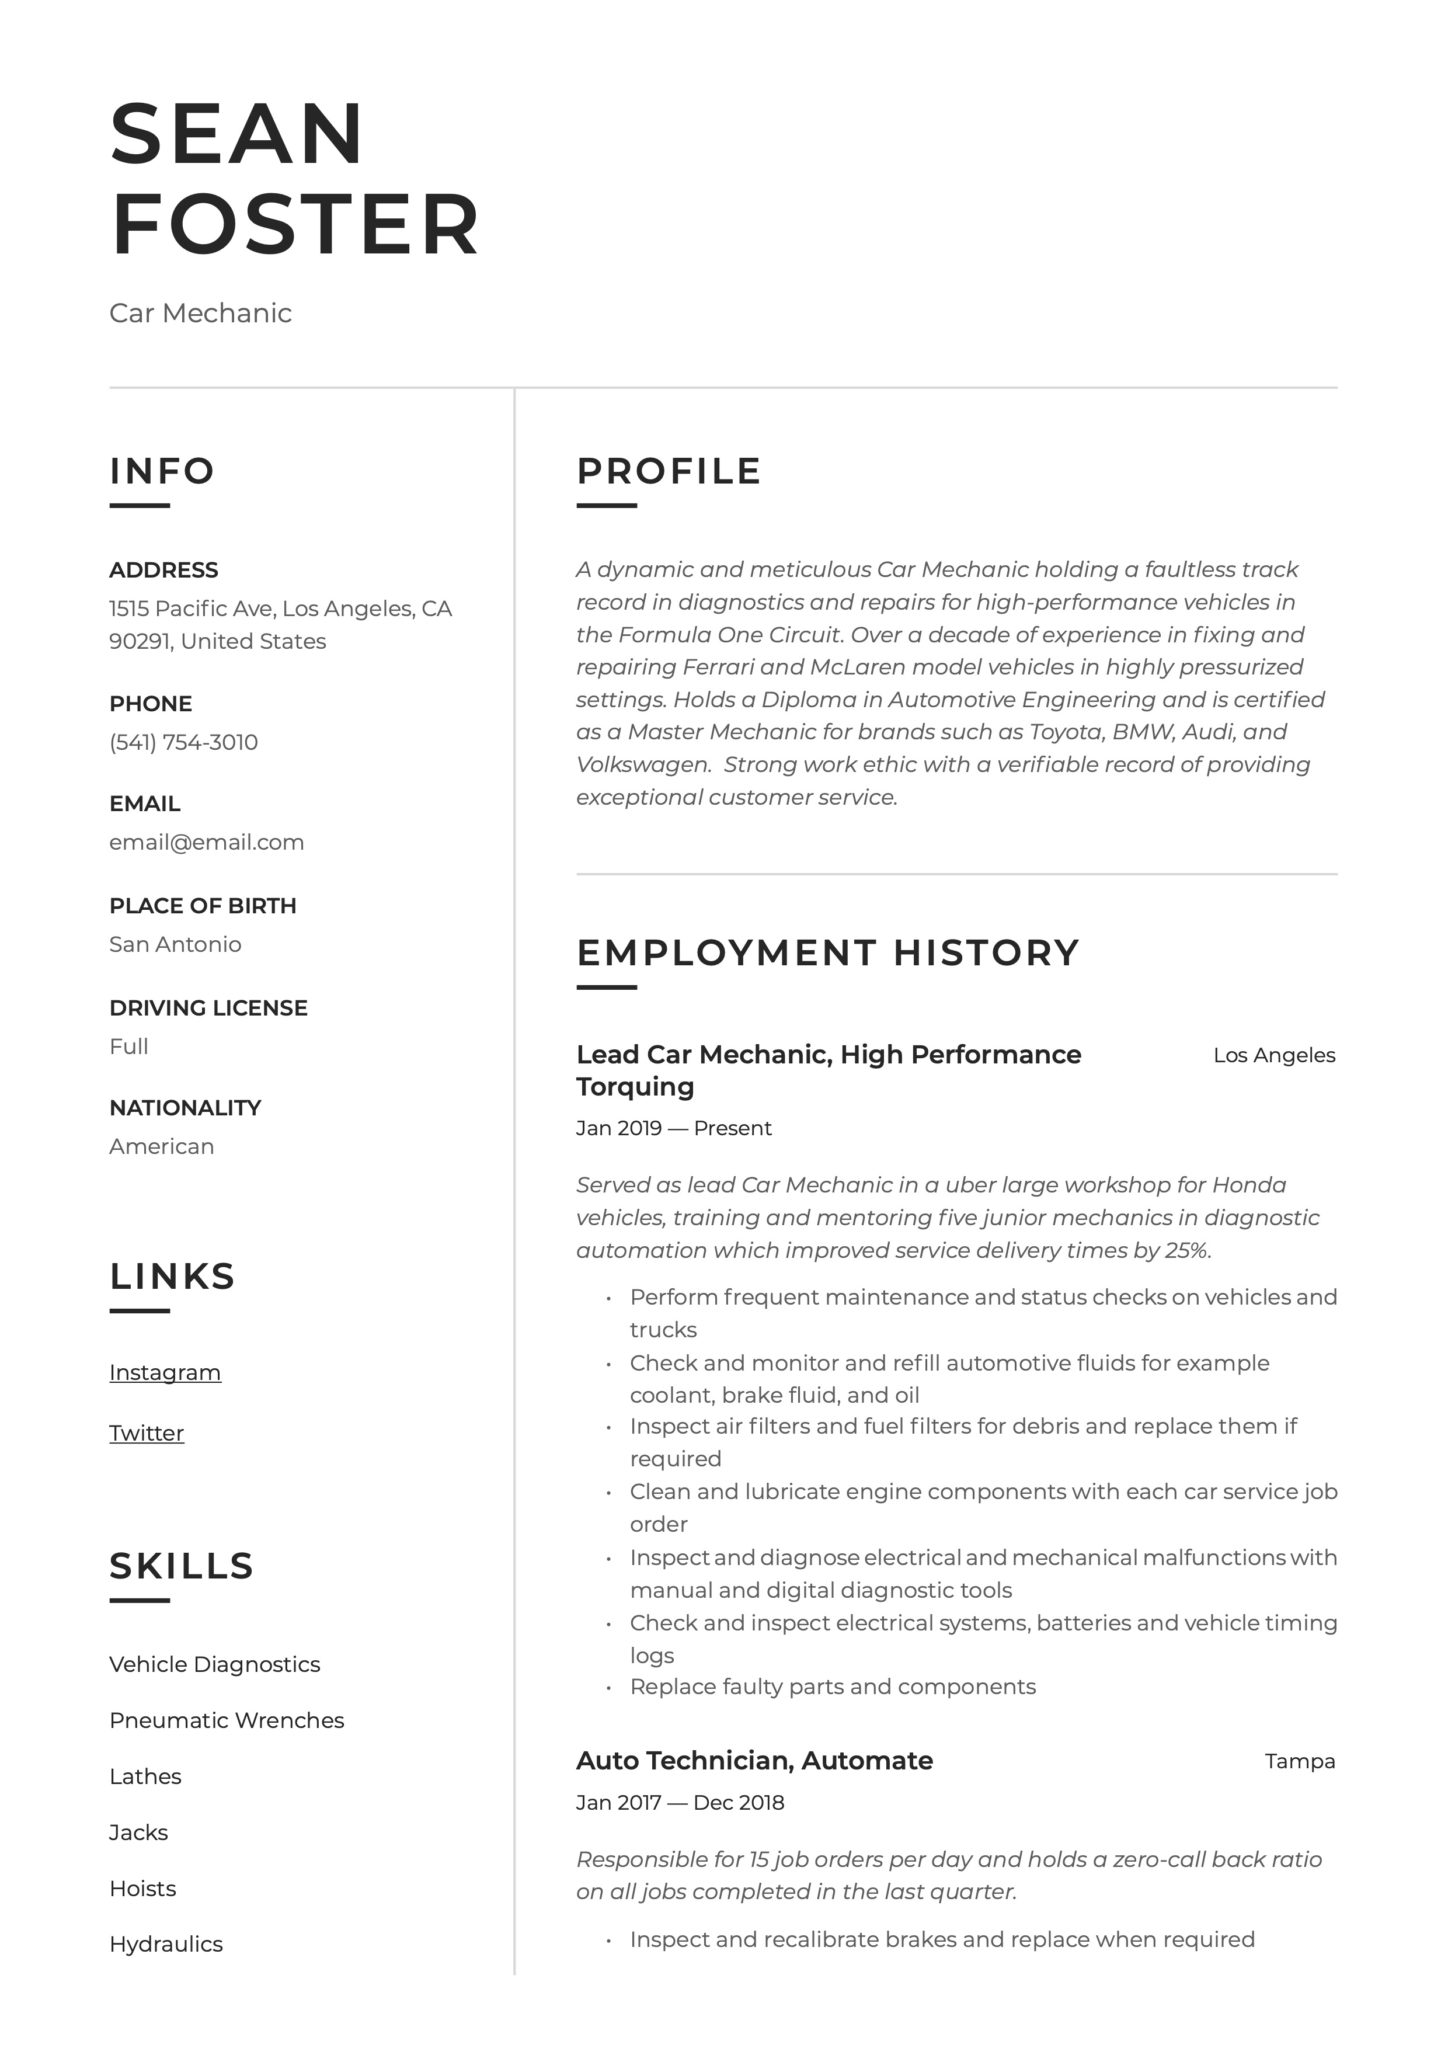 car mechanic resume guide examples iti motor format scaled makeup artist objective for Resume Iti Motor Mechanic Resume Format